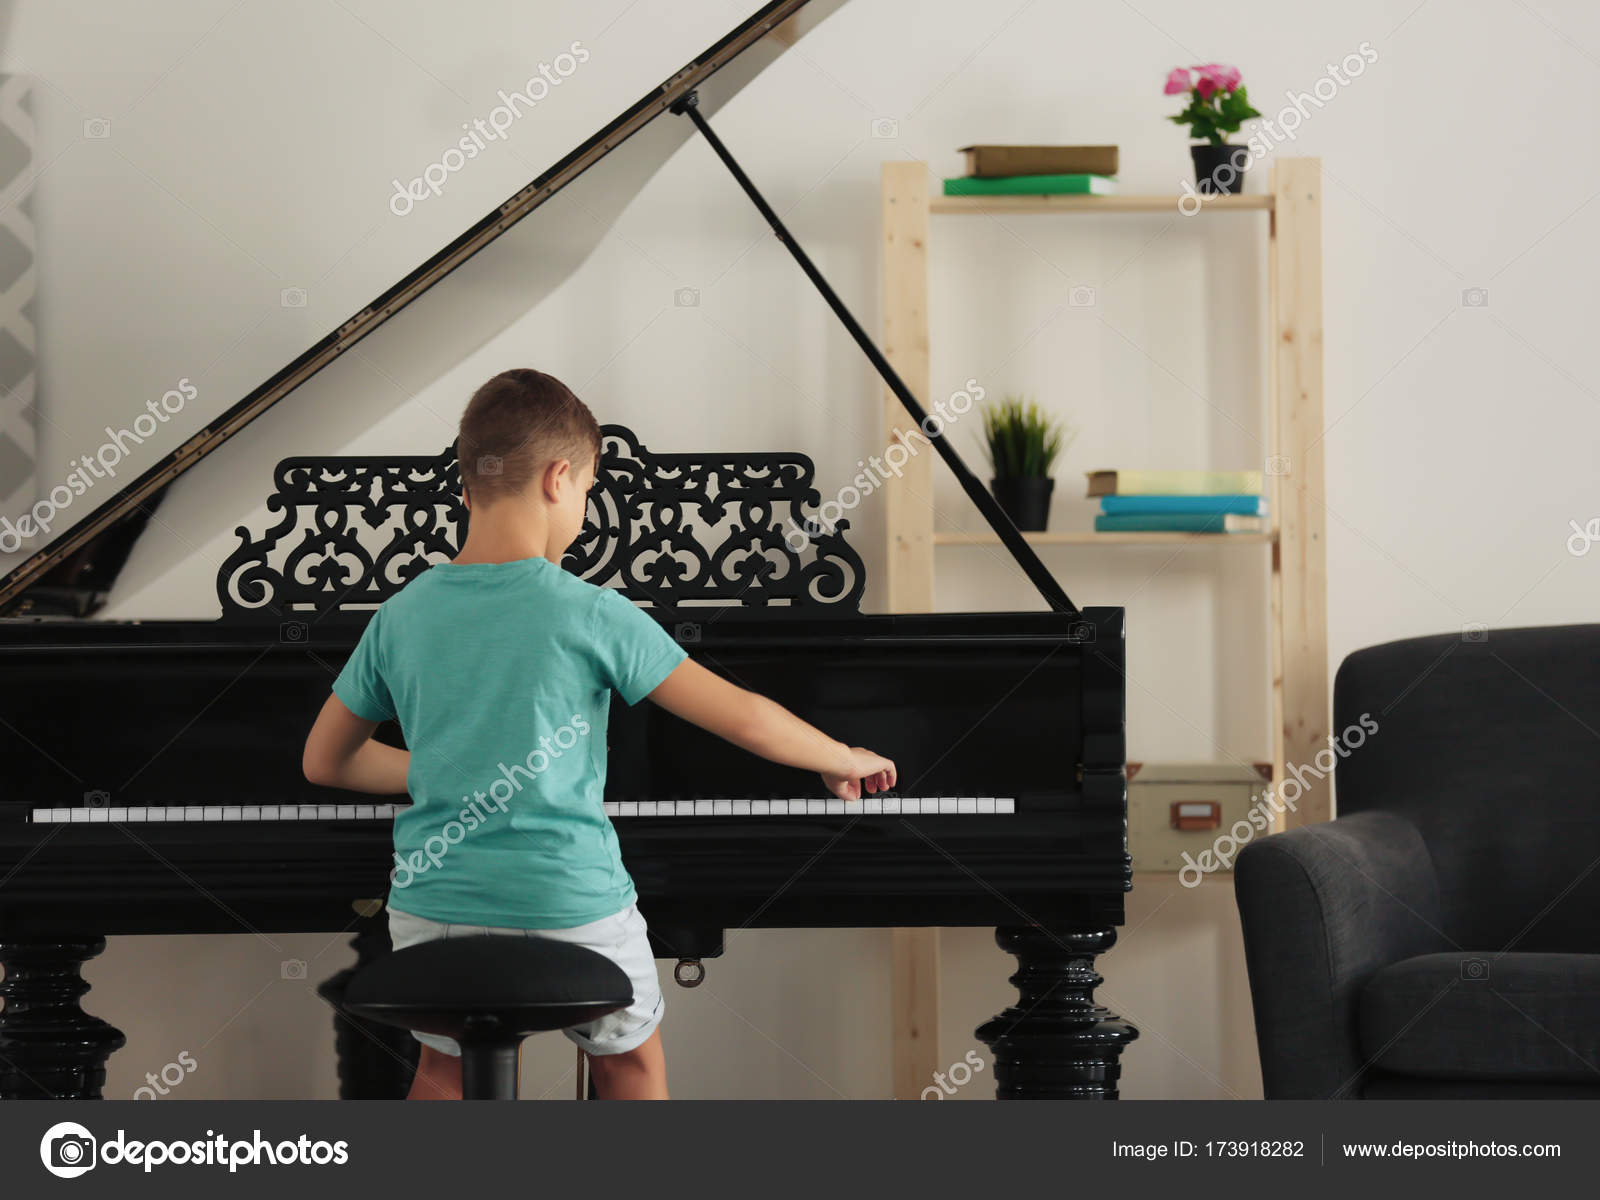 Image result for boy playing the piano